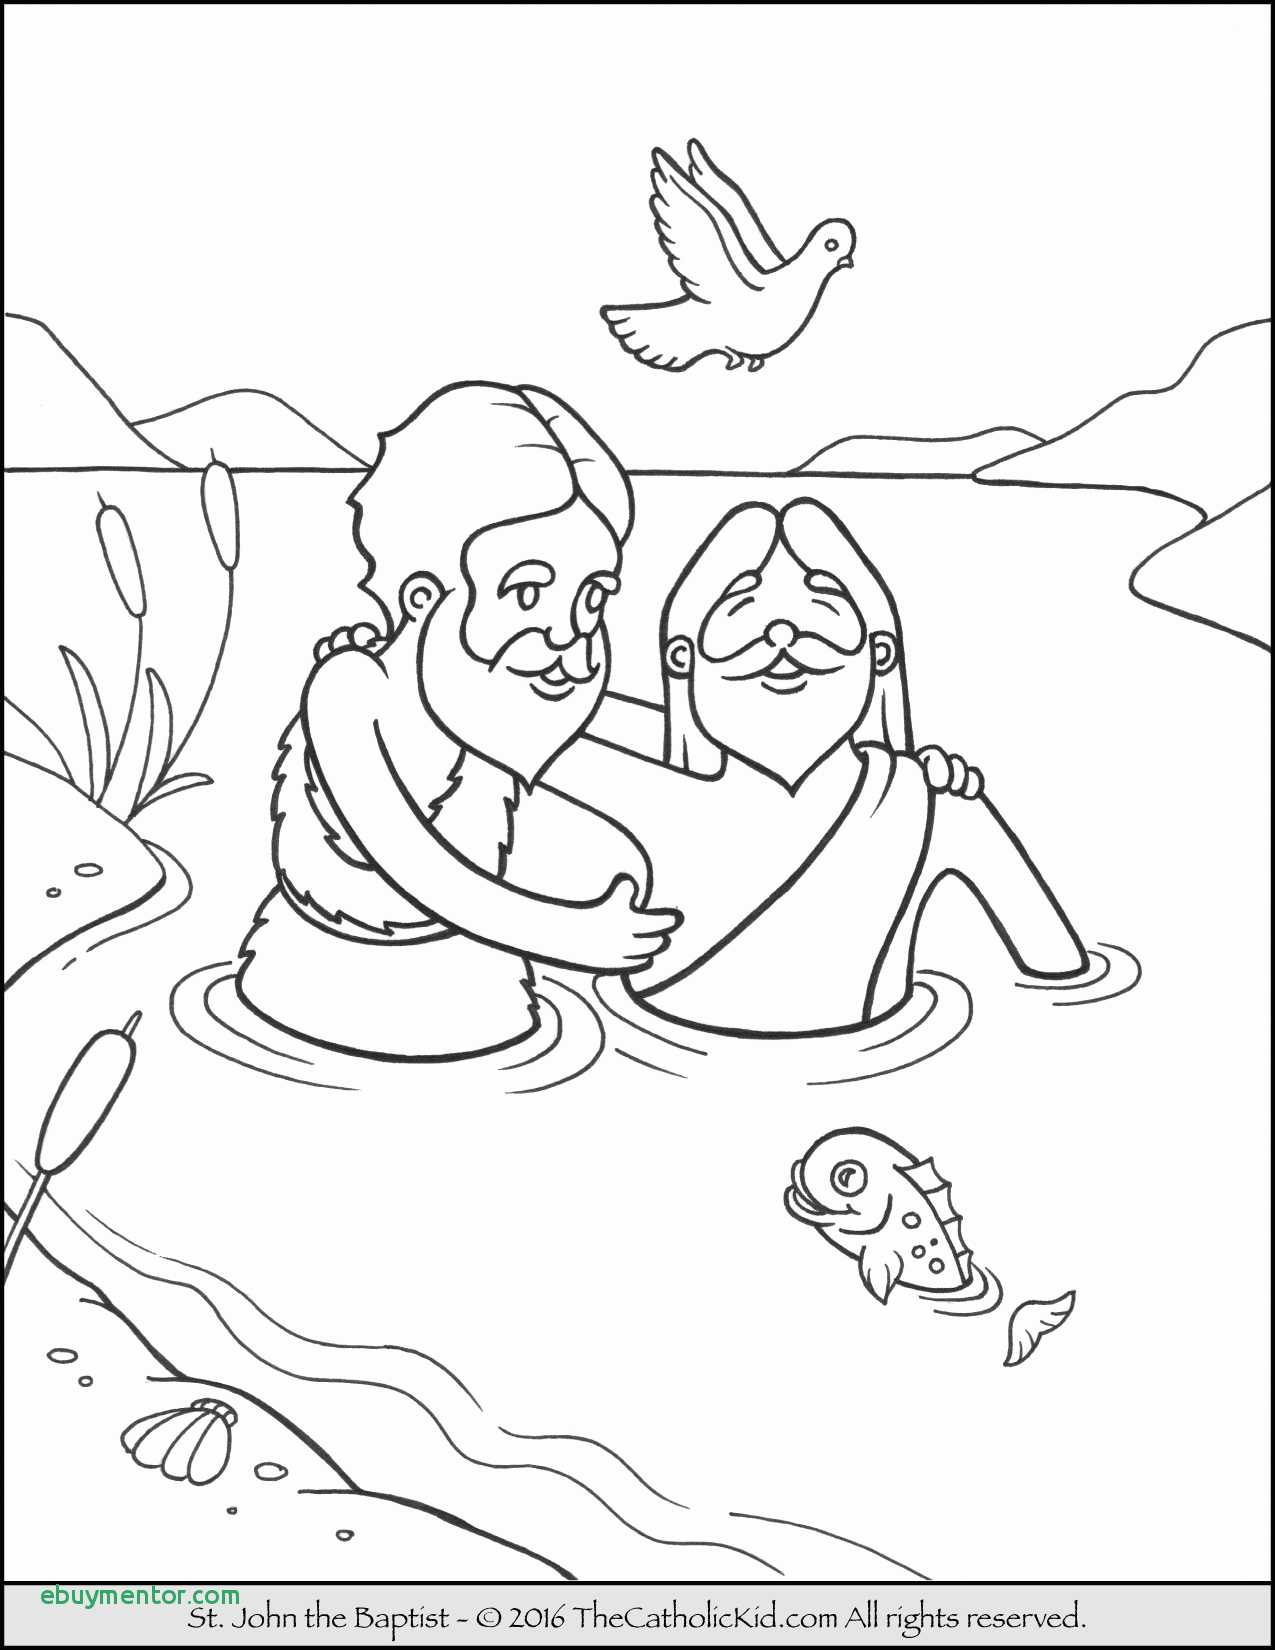 coloring pages of jesus Collection-Jesus with Children Coloring Pages 20-m